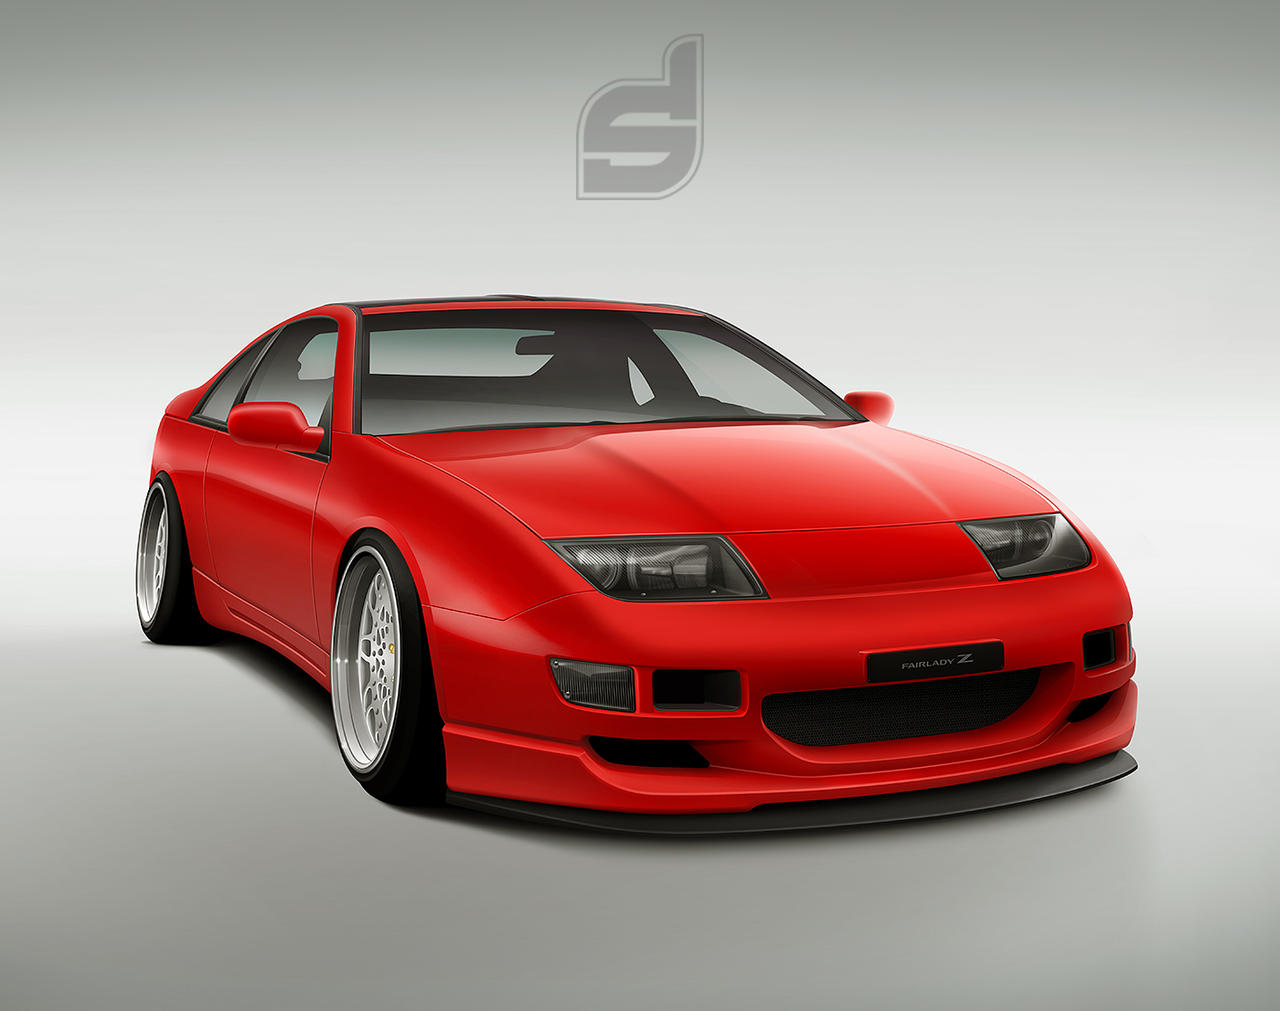 Vincent DeLucas 300zx by GTStudio